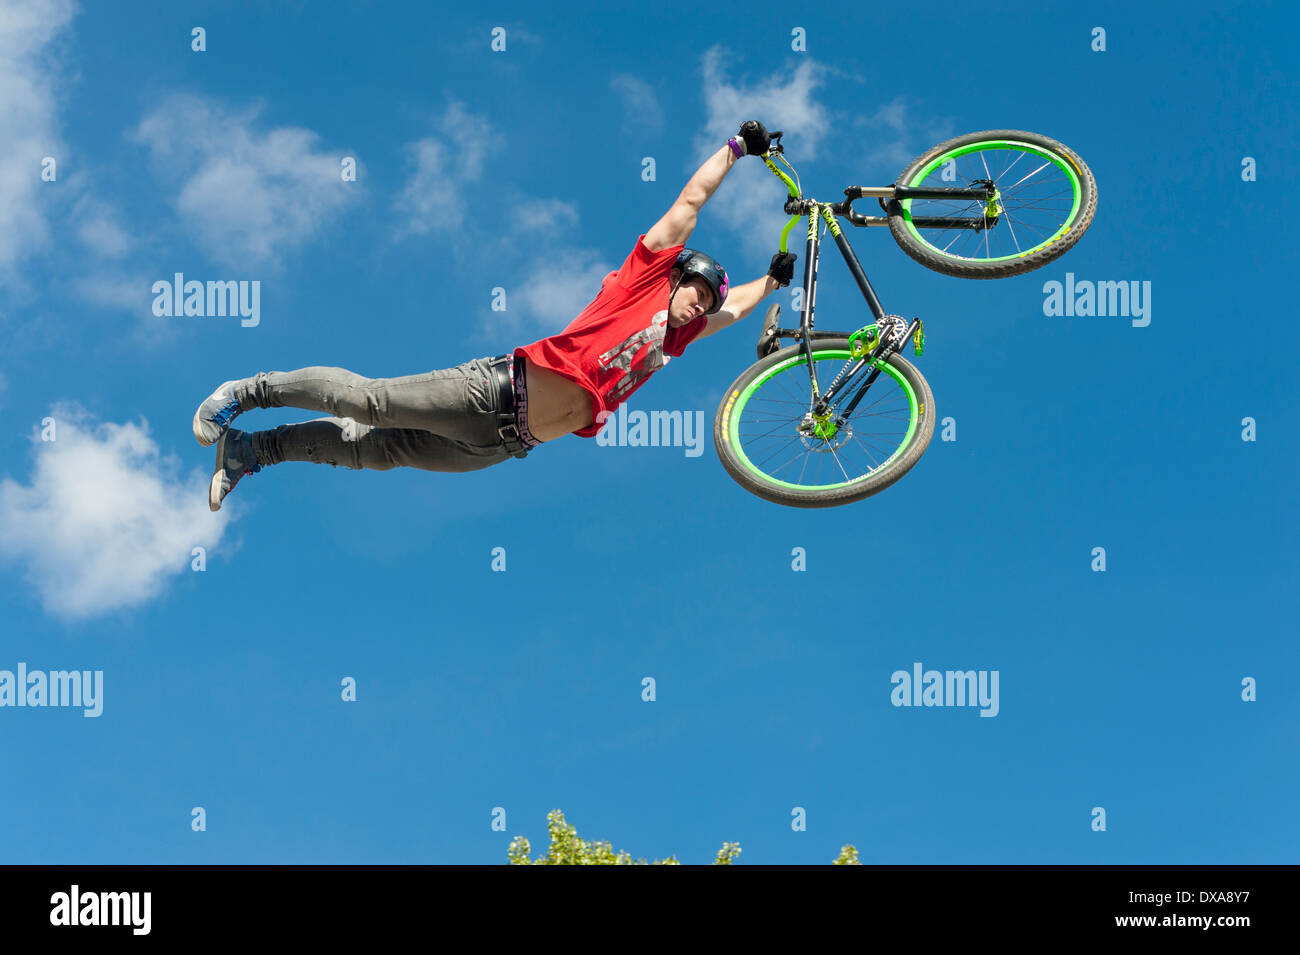 Freestyle mountainbike (MTB) professional Patrick Leitner (AUT) shows spectacular jumps at the 2013 freestyle.ch event in Zurich - Stock Image